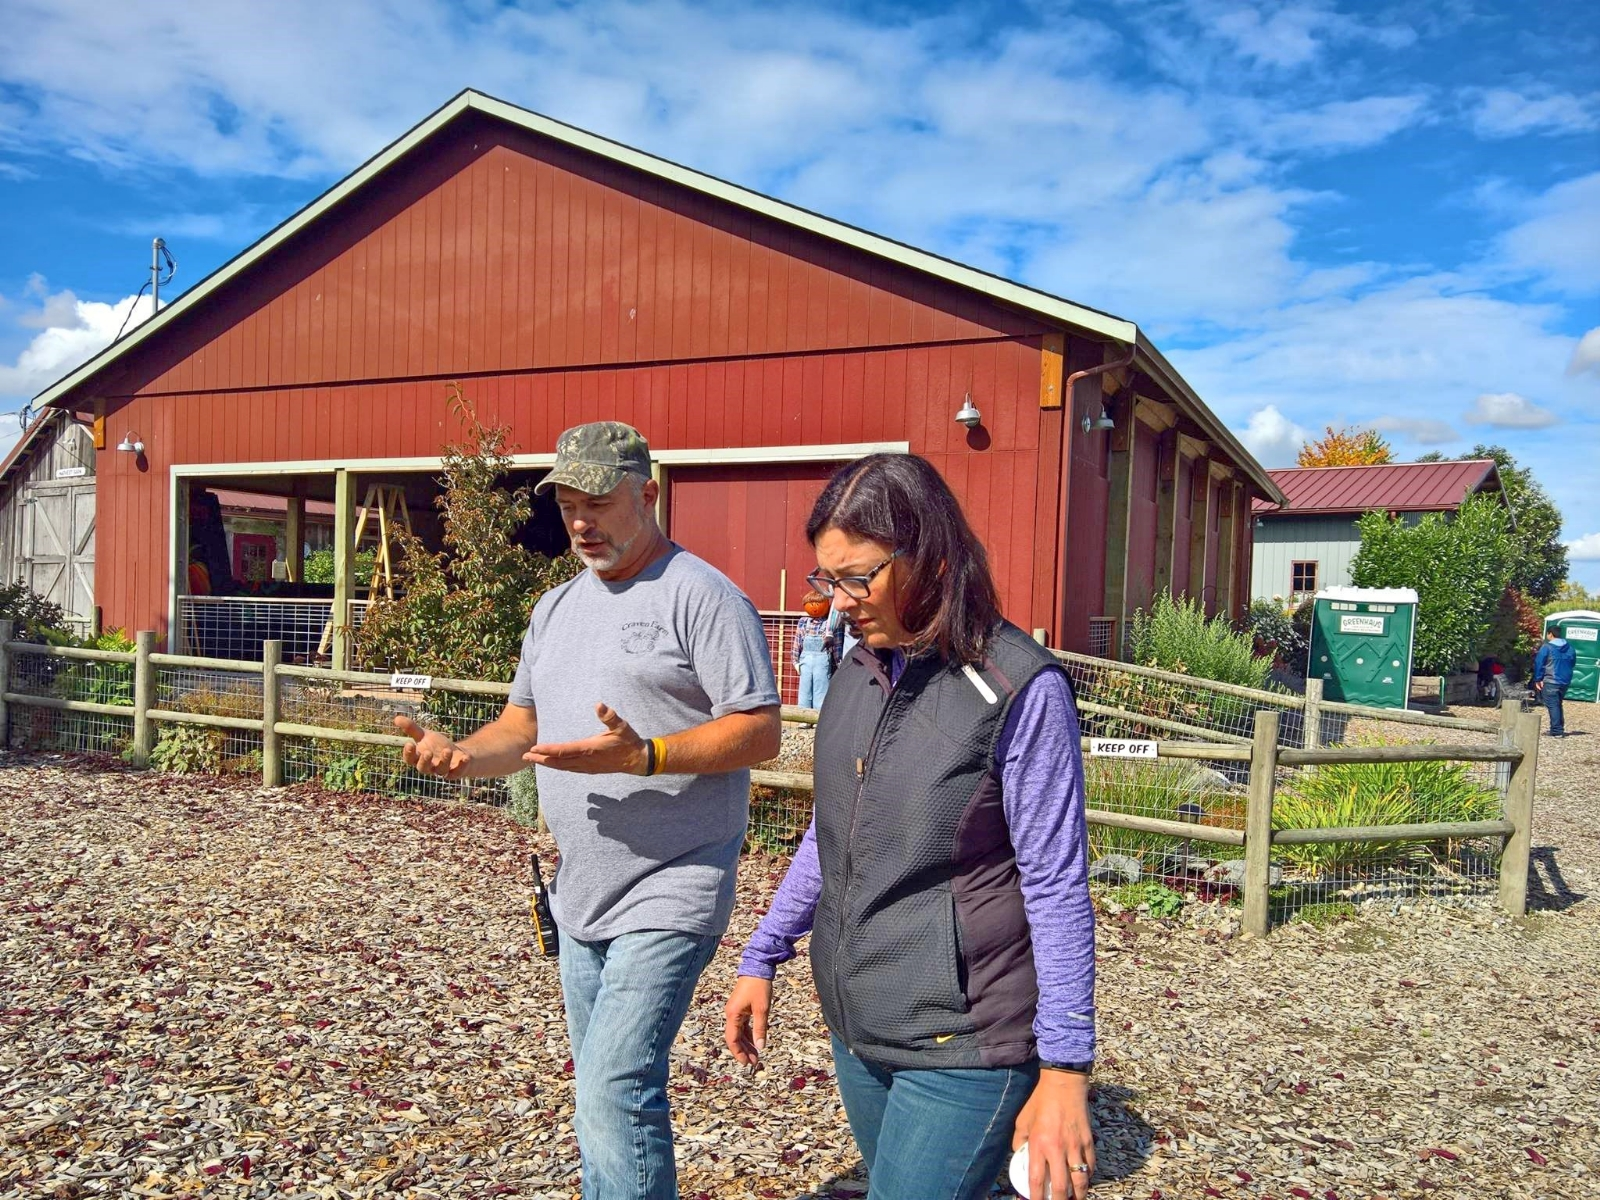 Rep. Suzan DelBene walking through a farm